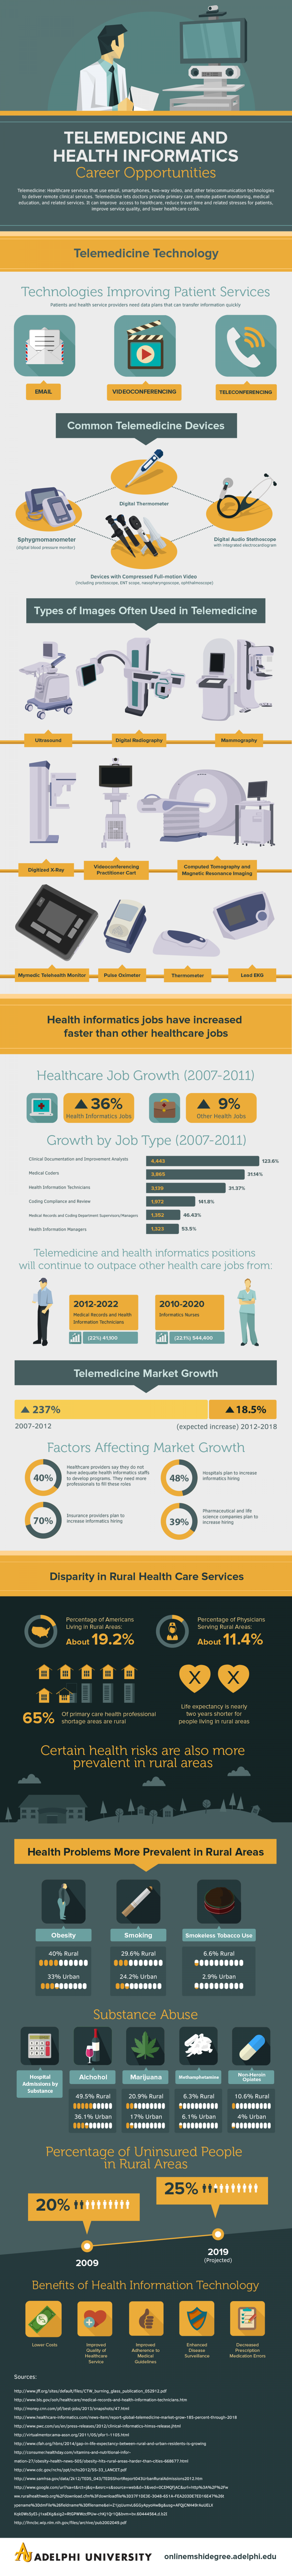 Career Opportunities in Telemedicine and Health Informatics Infographic